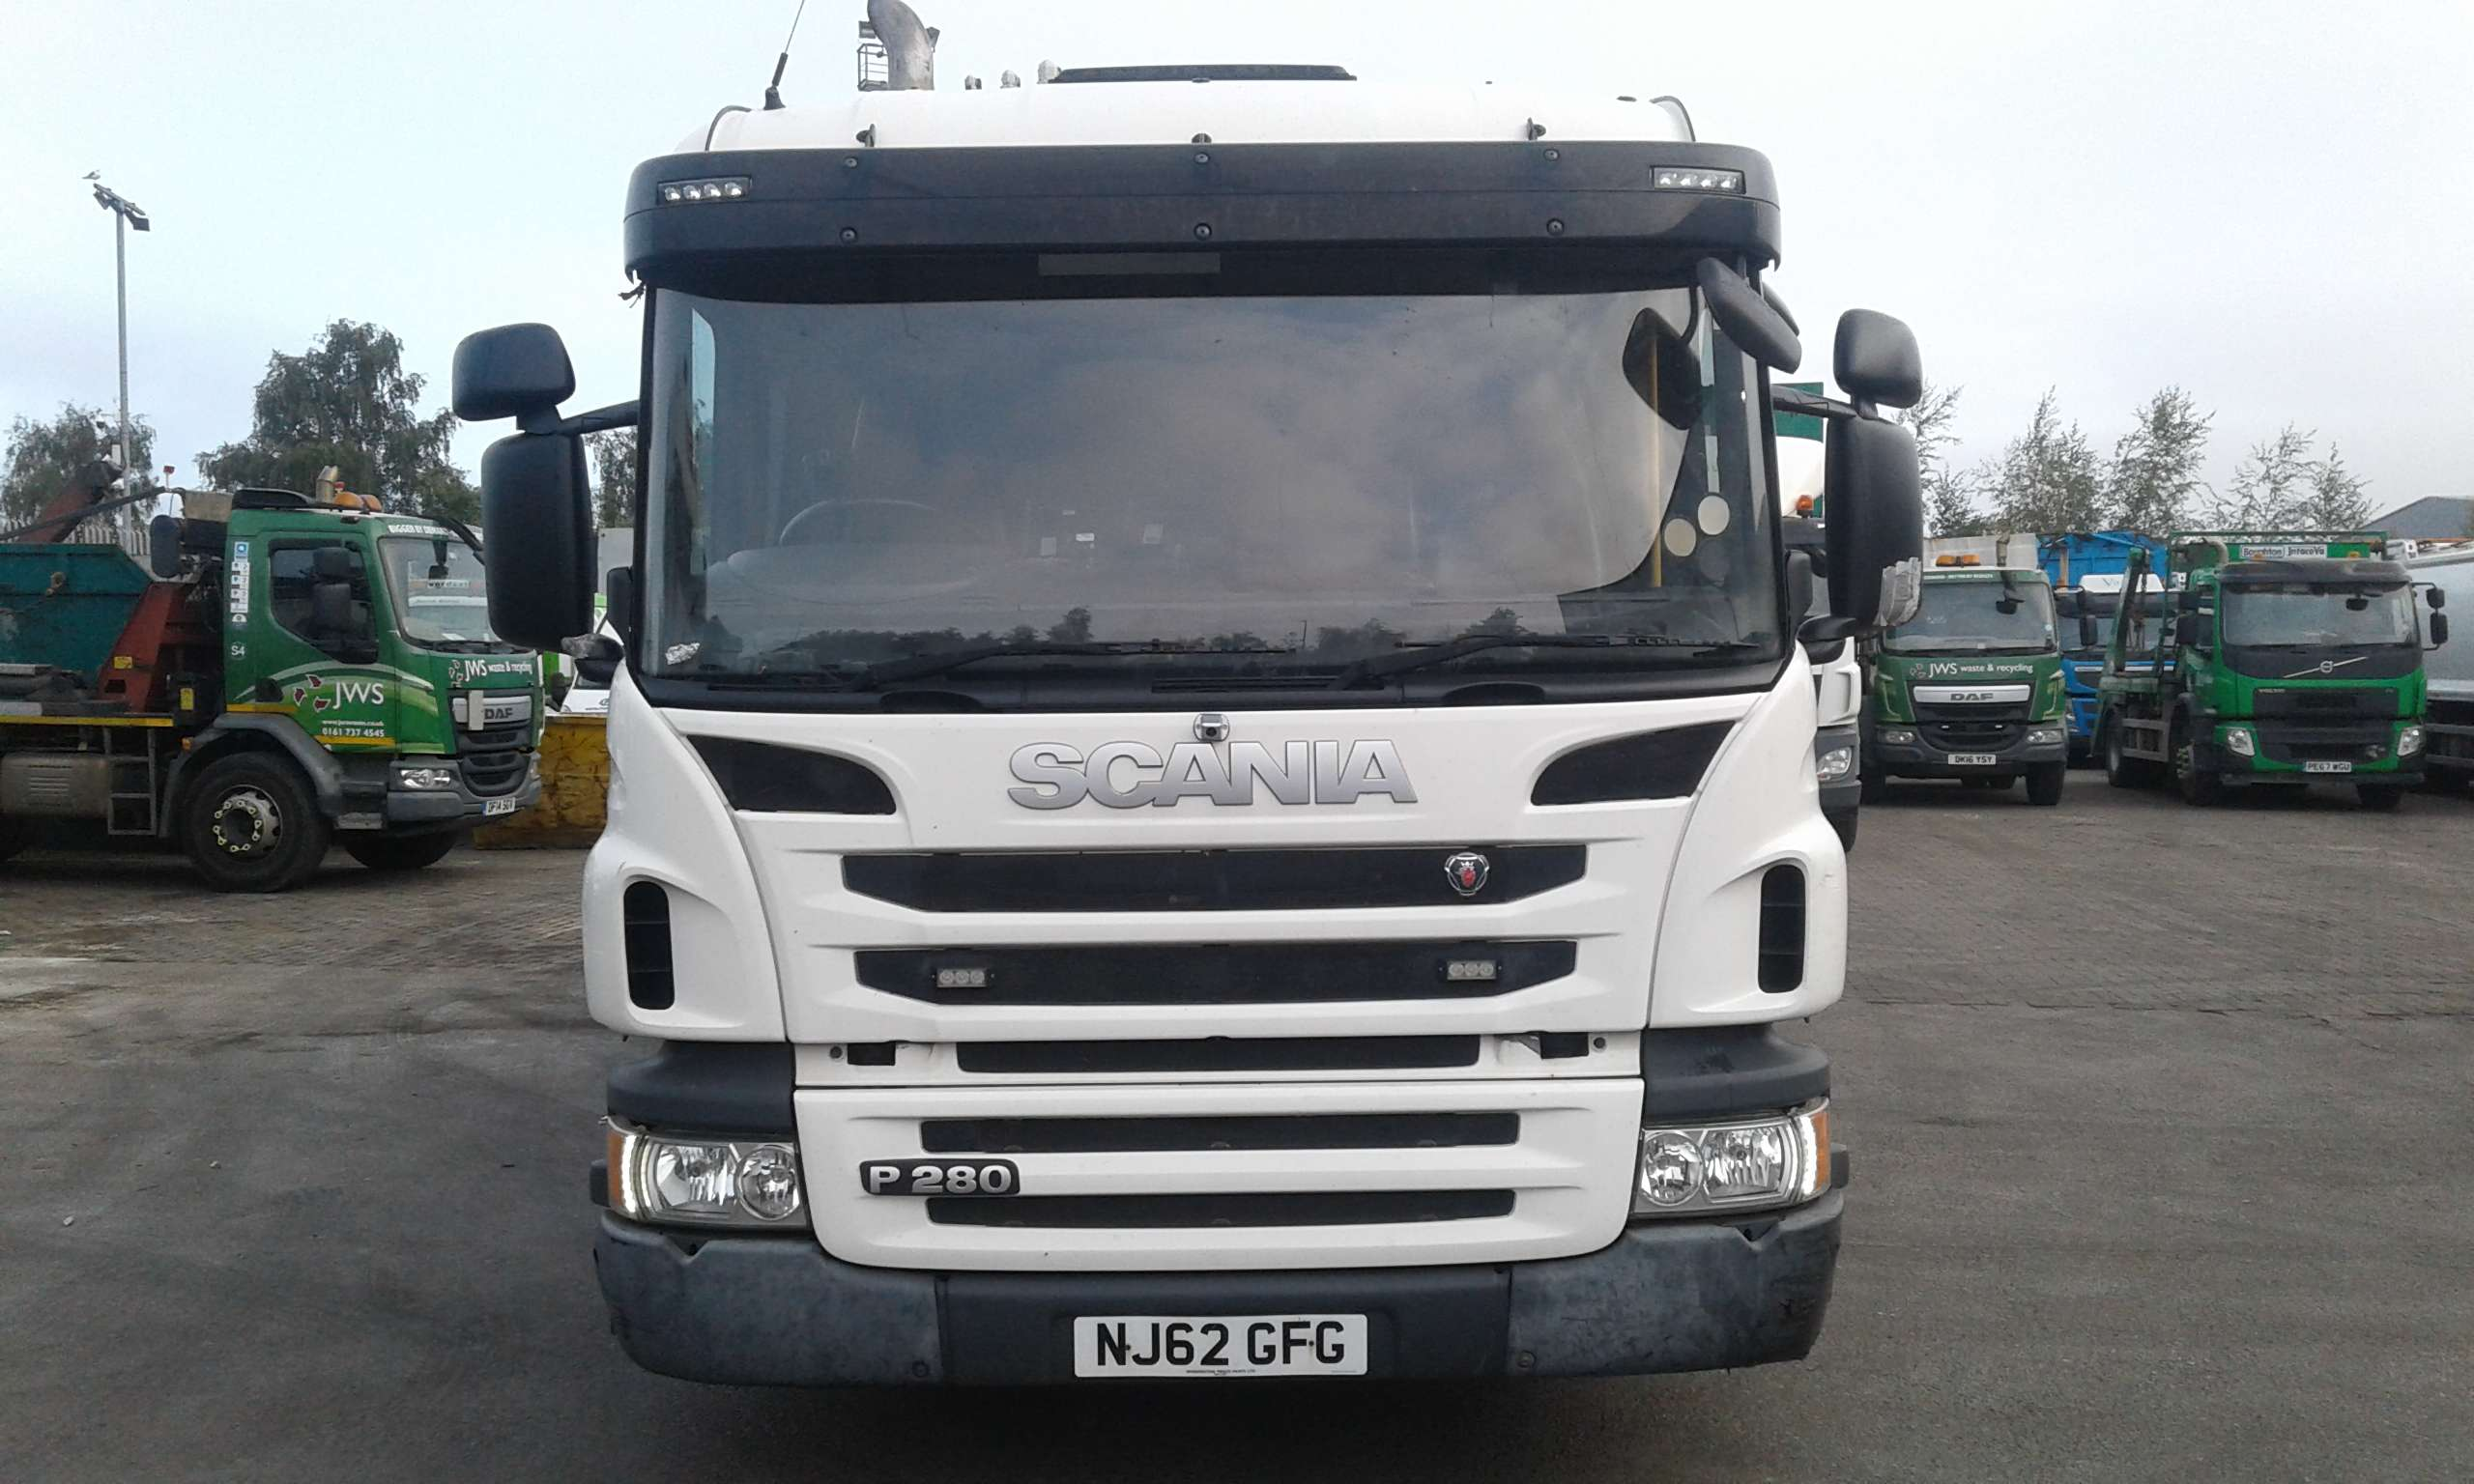 2012 Scania 6x2 Rear steer heil body